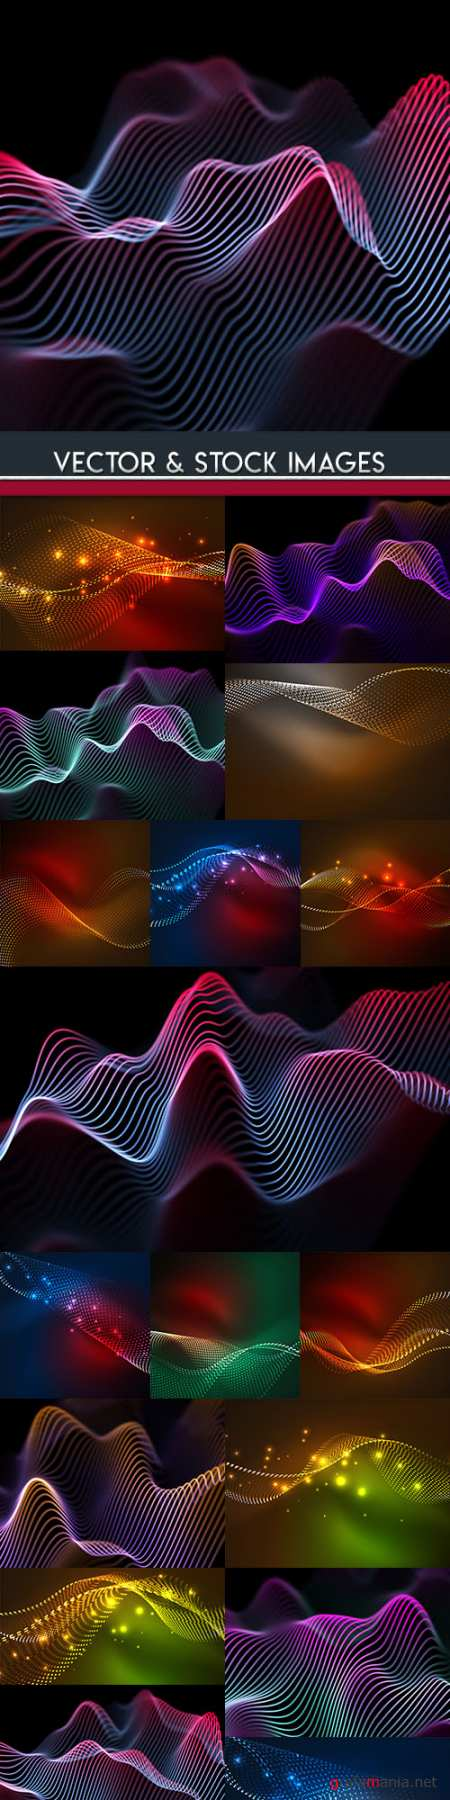 Bright lines neon background decorative abstract